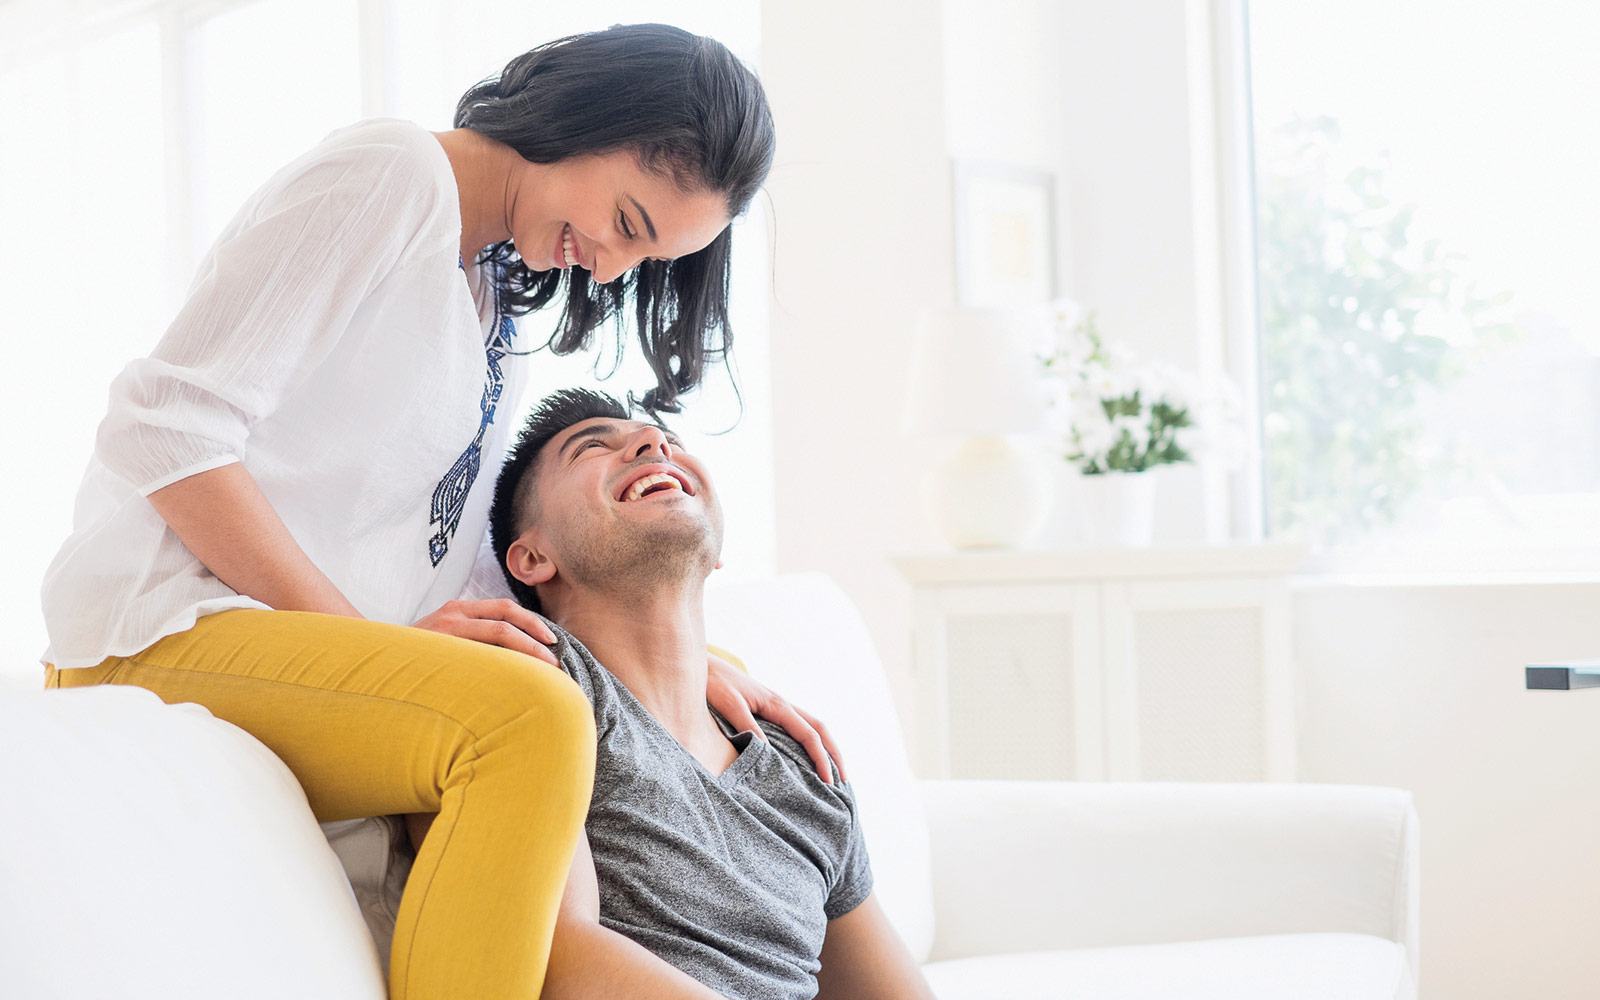 Couple sitting on a couch, smiling while looking at each other